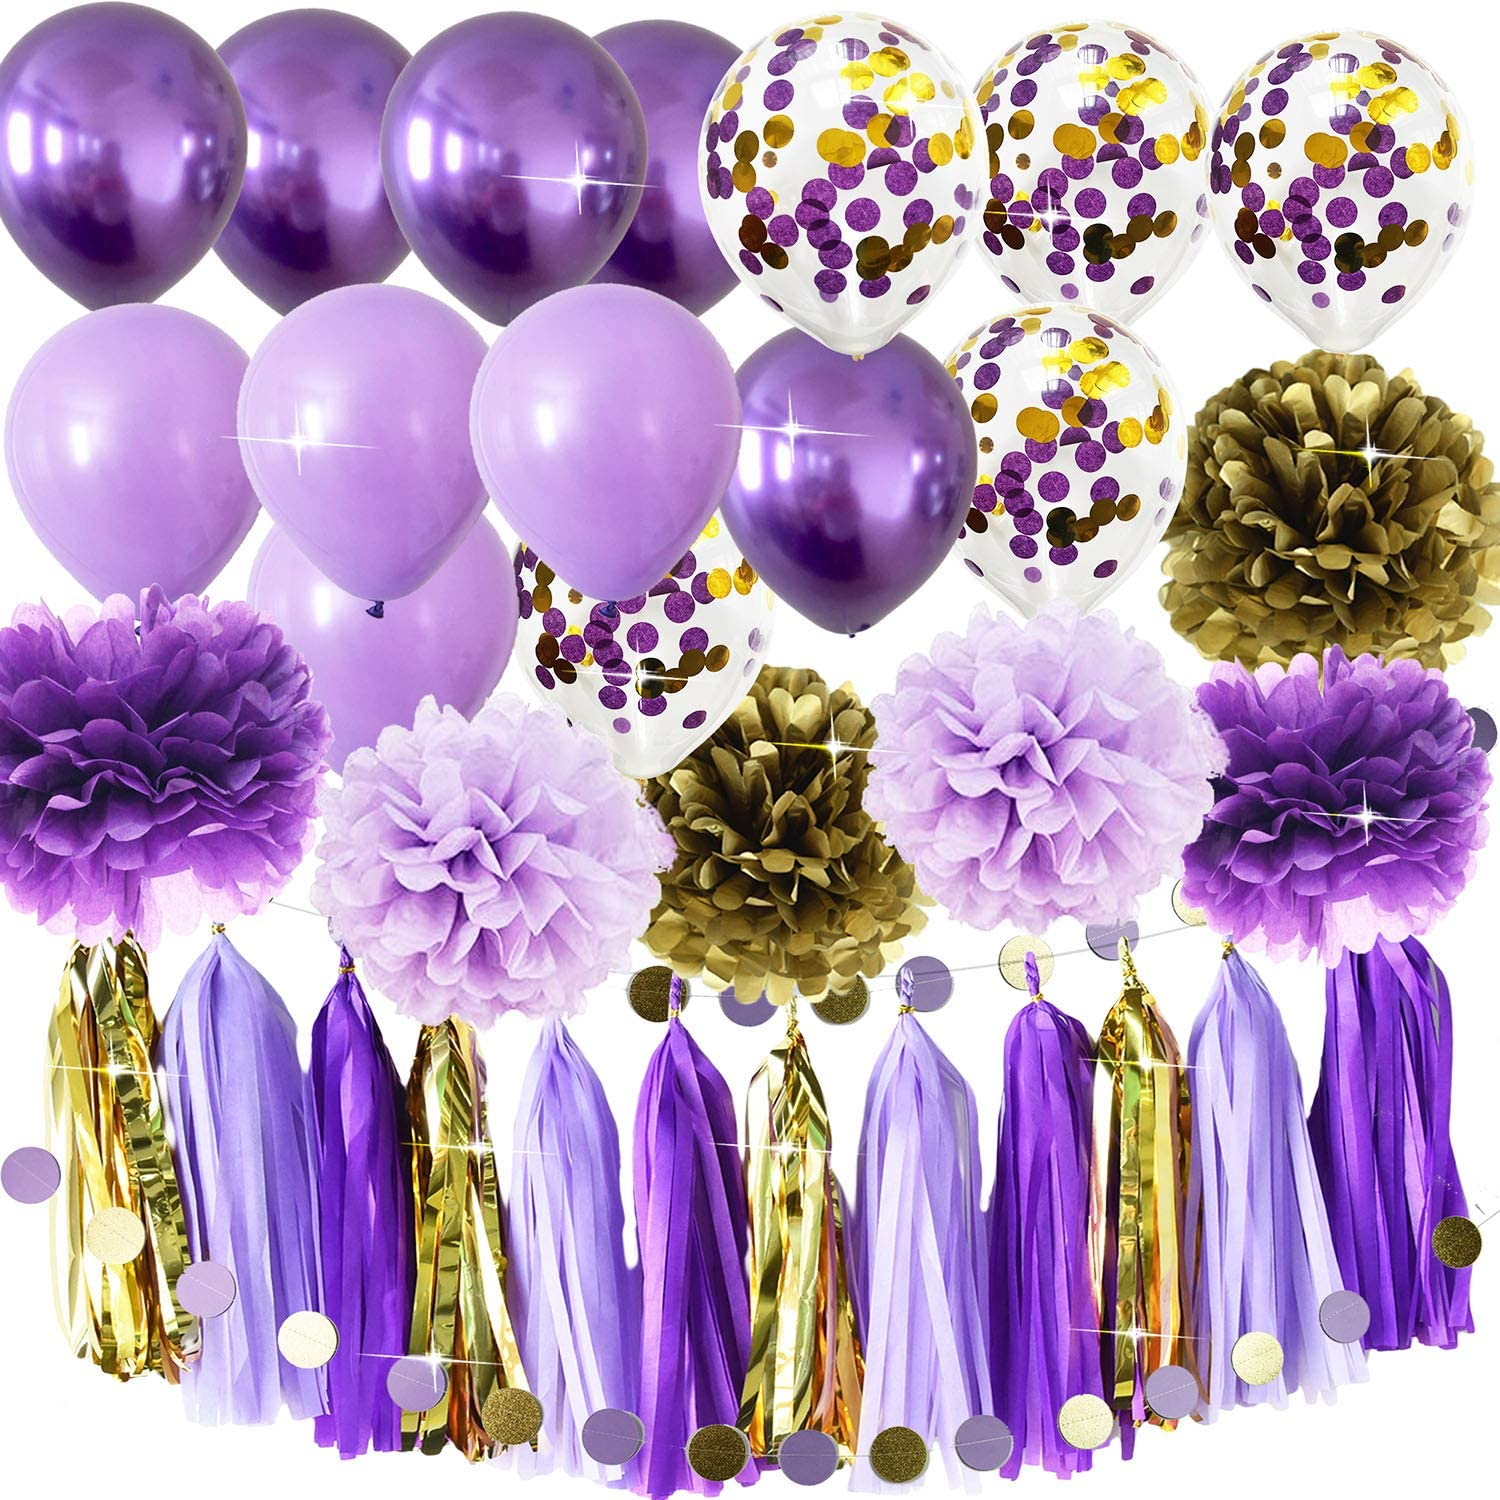 Qian's Party Purple Gold Birthday Party Decorations Tissue Paper Pom Pom Purple Gold Confetti Ballons Birthday Decorations Purple Bridal Shower Decorations (Purple Gold Confetti)